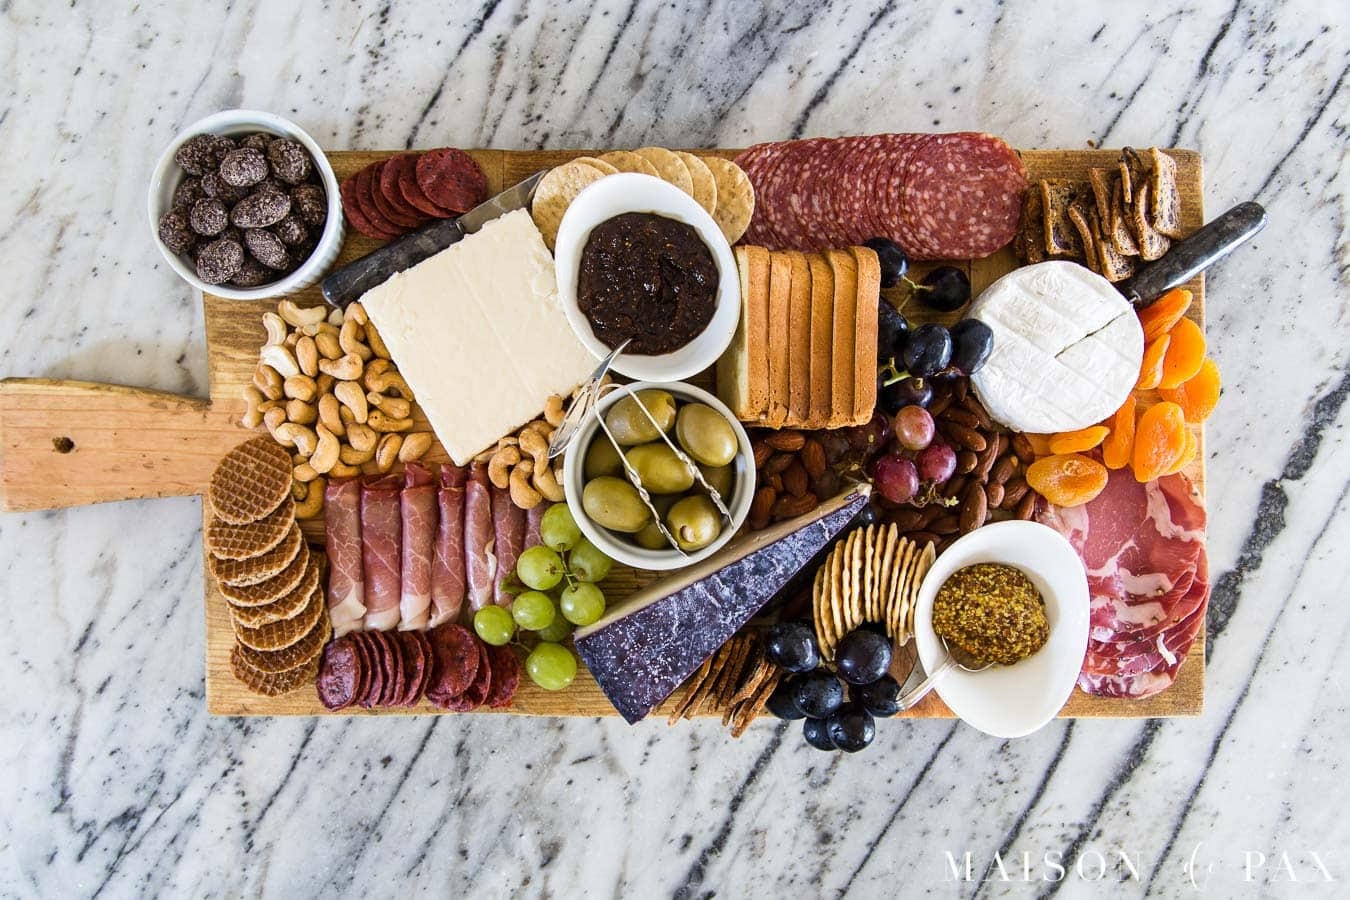 diy charcuterie board filled with cheeses, cured meats, dried and fresh fruits, and other treats | Maison de Pax